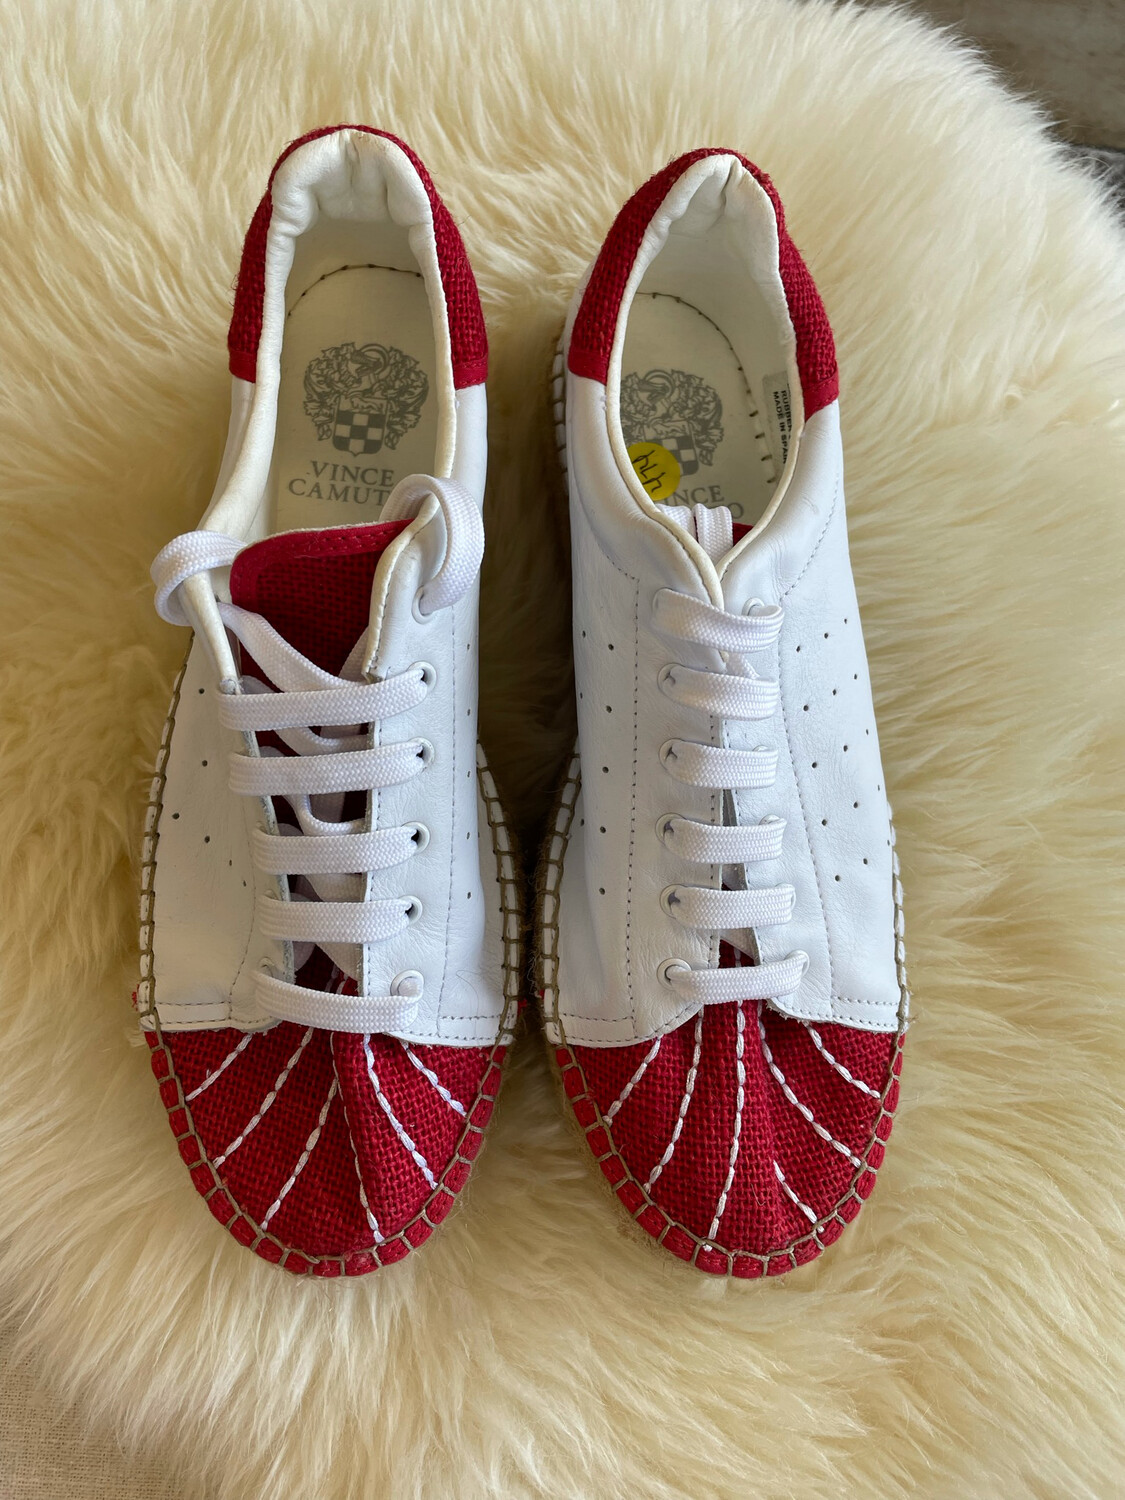 Vince Camuto White & Red Lace Up Sneakers - Size 11